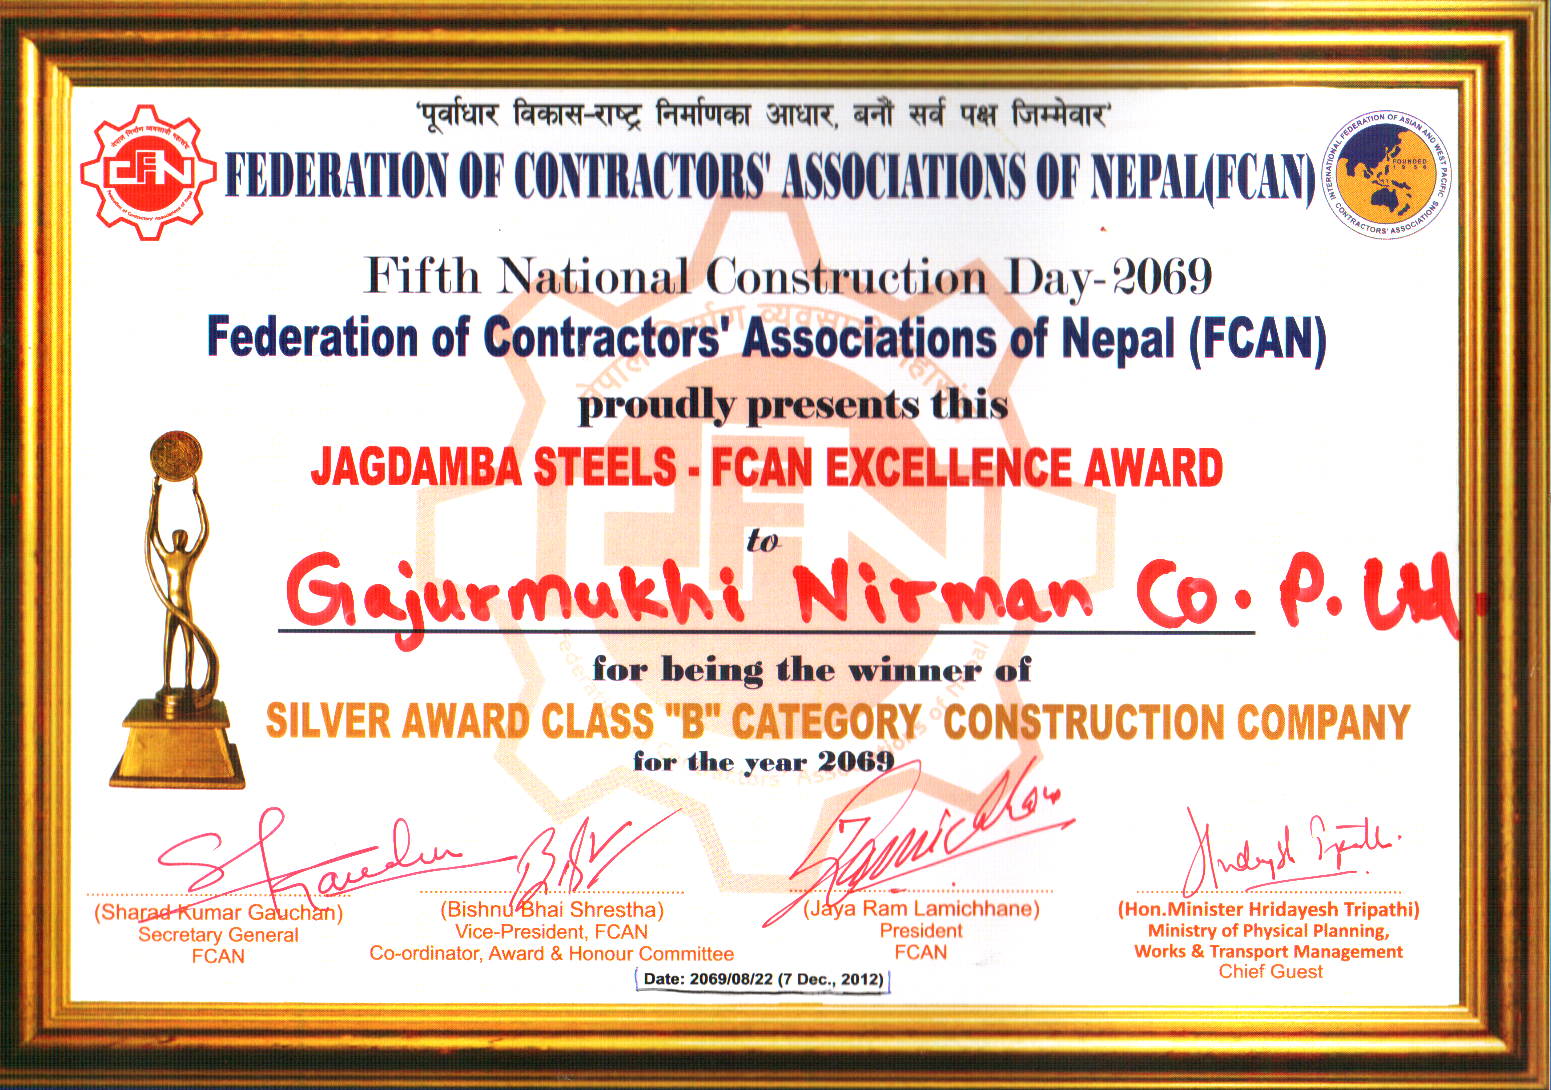 FCAN SIlVER AWARD IN 2013 A.D.